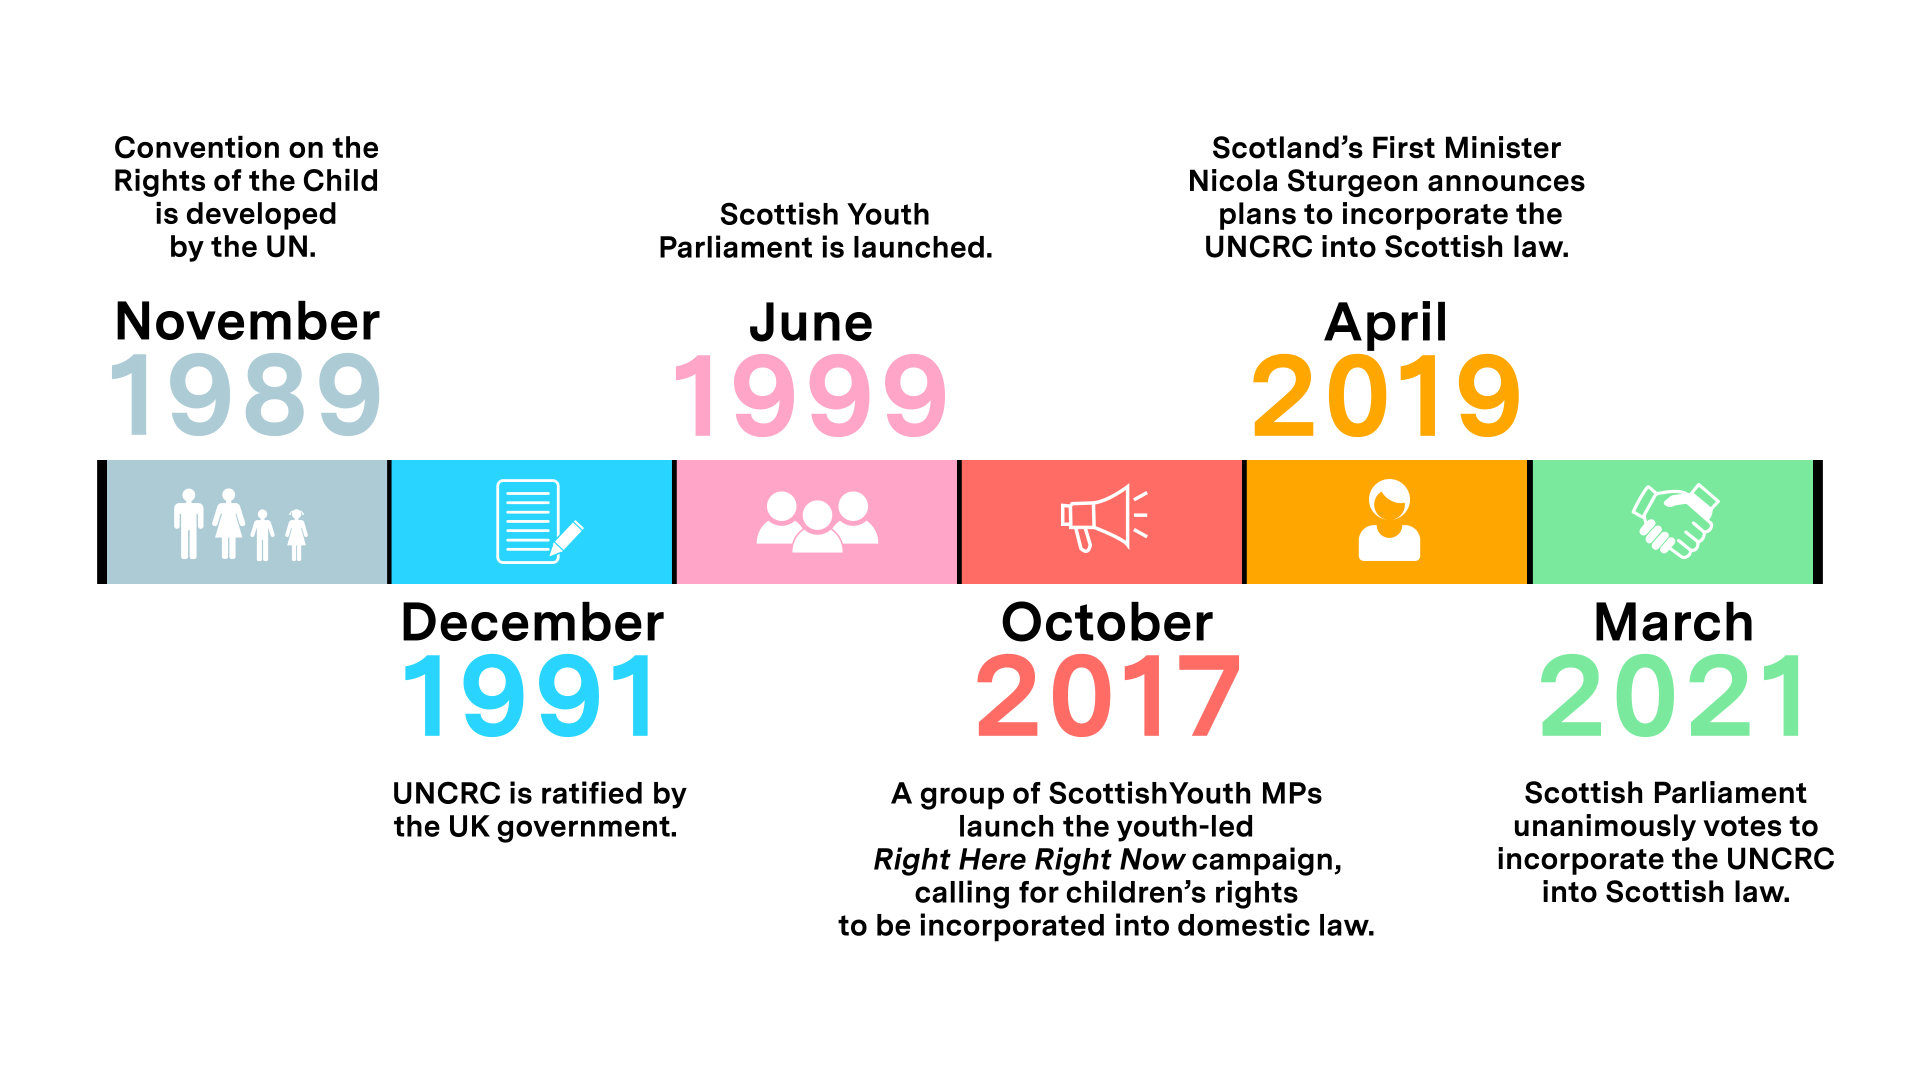 Timeline of the UNCRC implementation